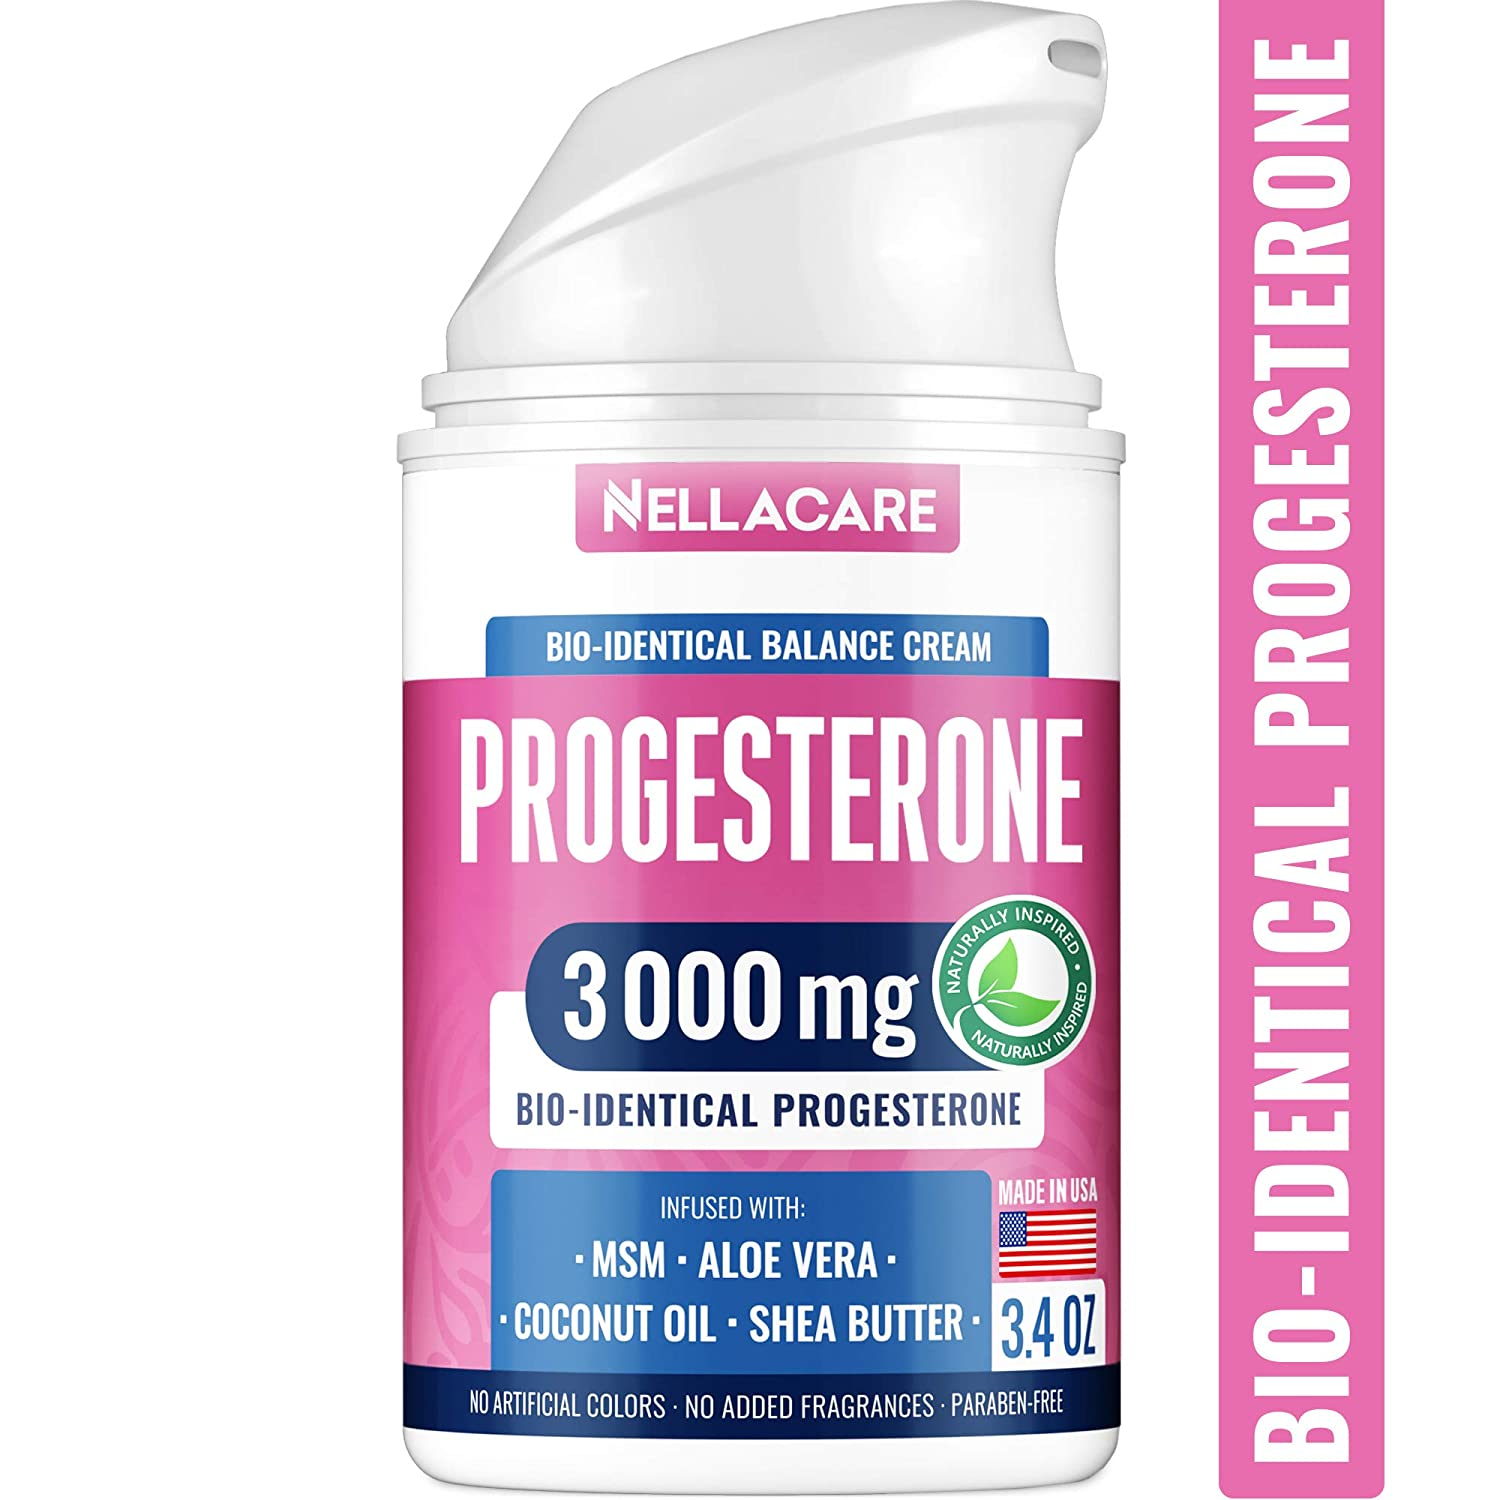 Progesterone Cream - BIOidentical Progesterone for Hormonal Balance - USA Made - 100% Natural PCOS Supplement - Menopause Relief Progesterone Cream for Women - NO Paraben, Soy-Free & Non-GMO